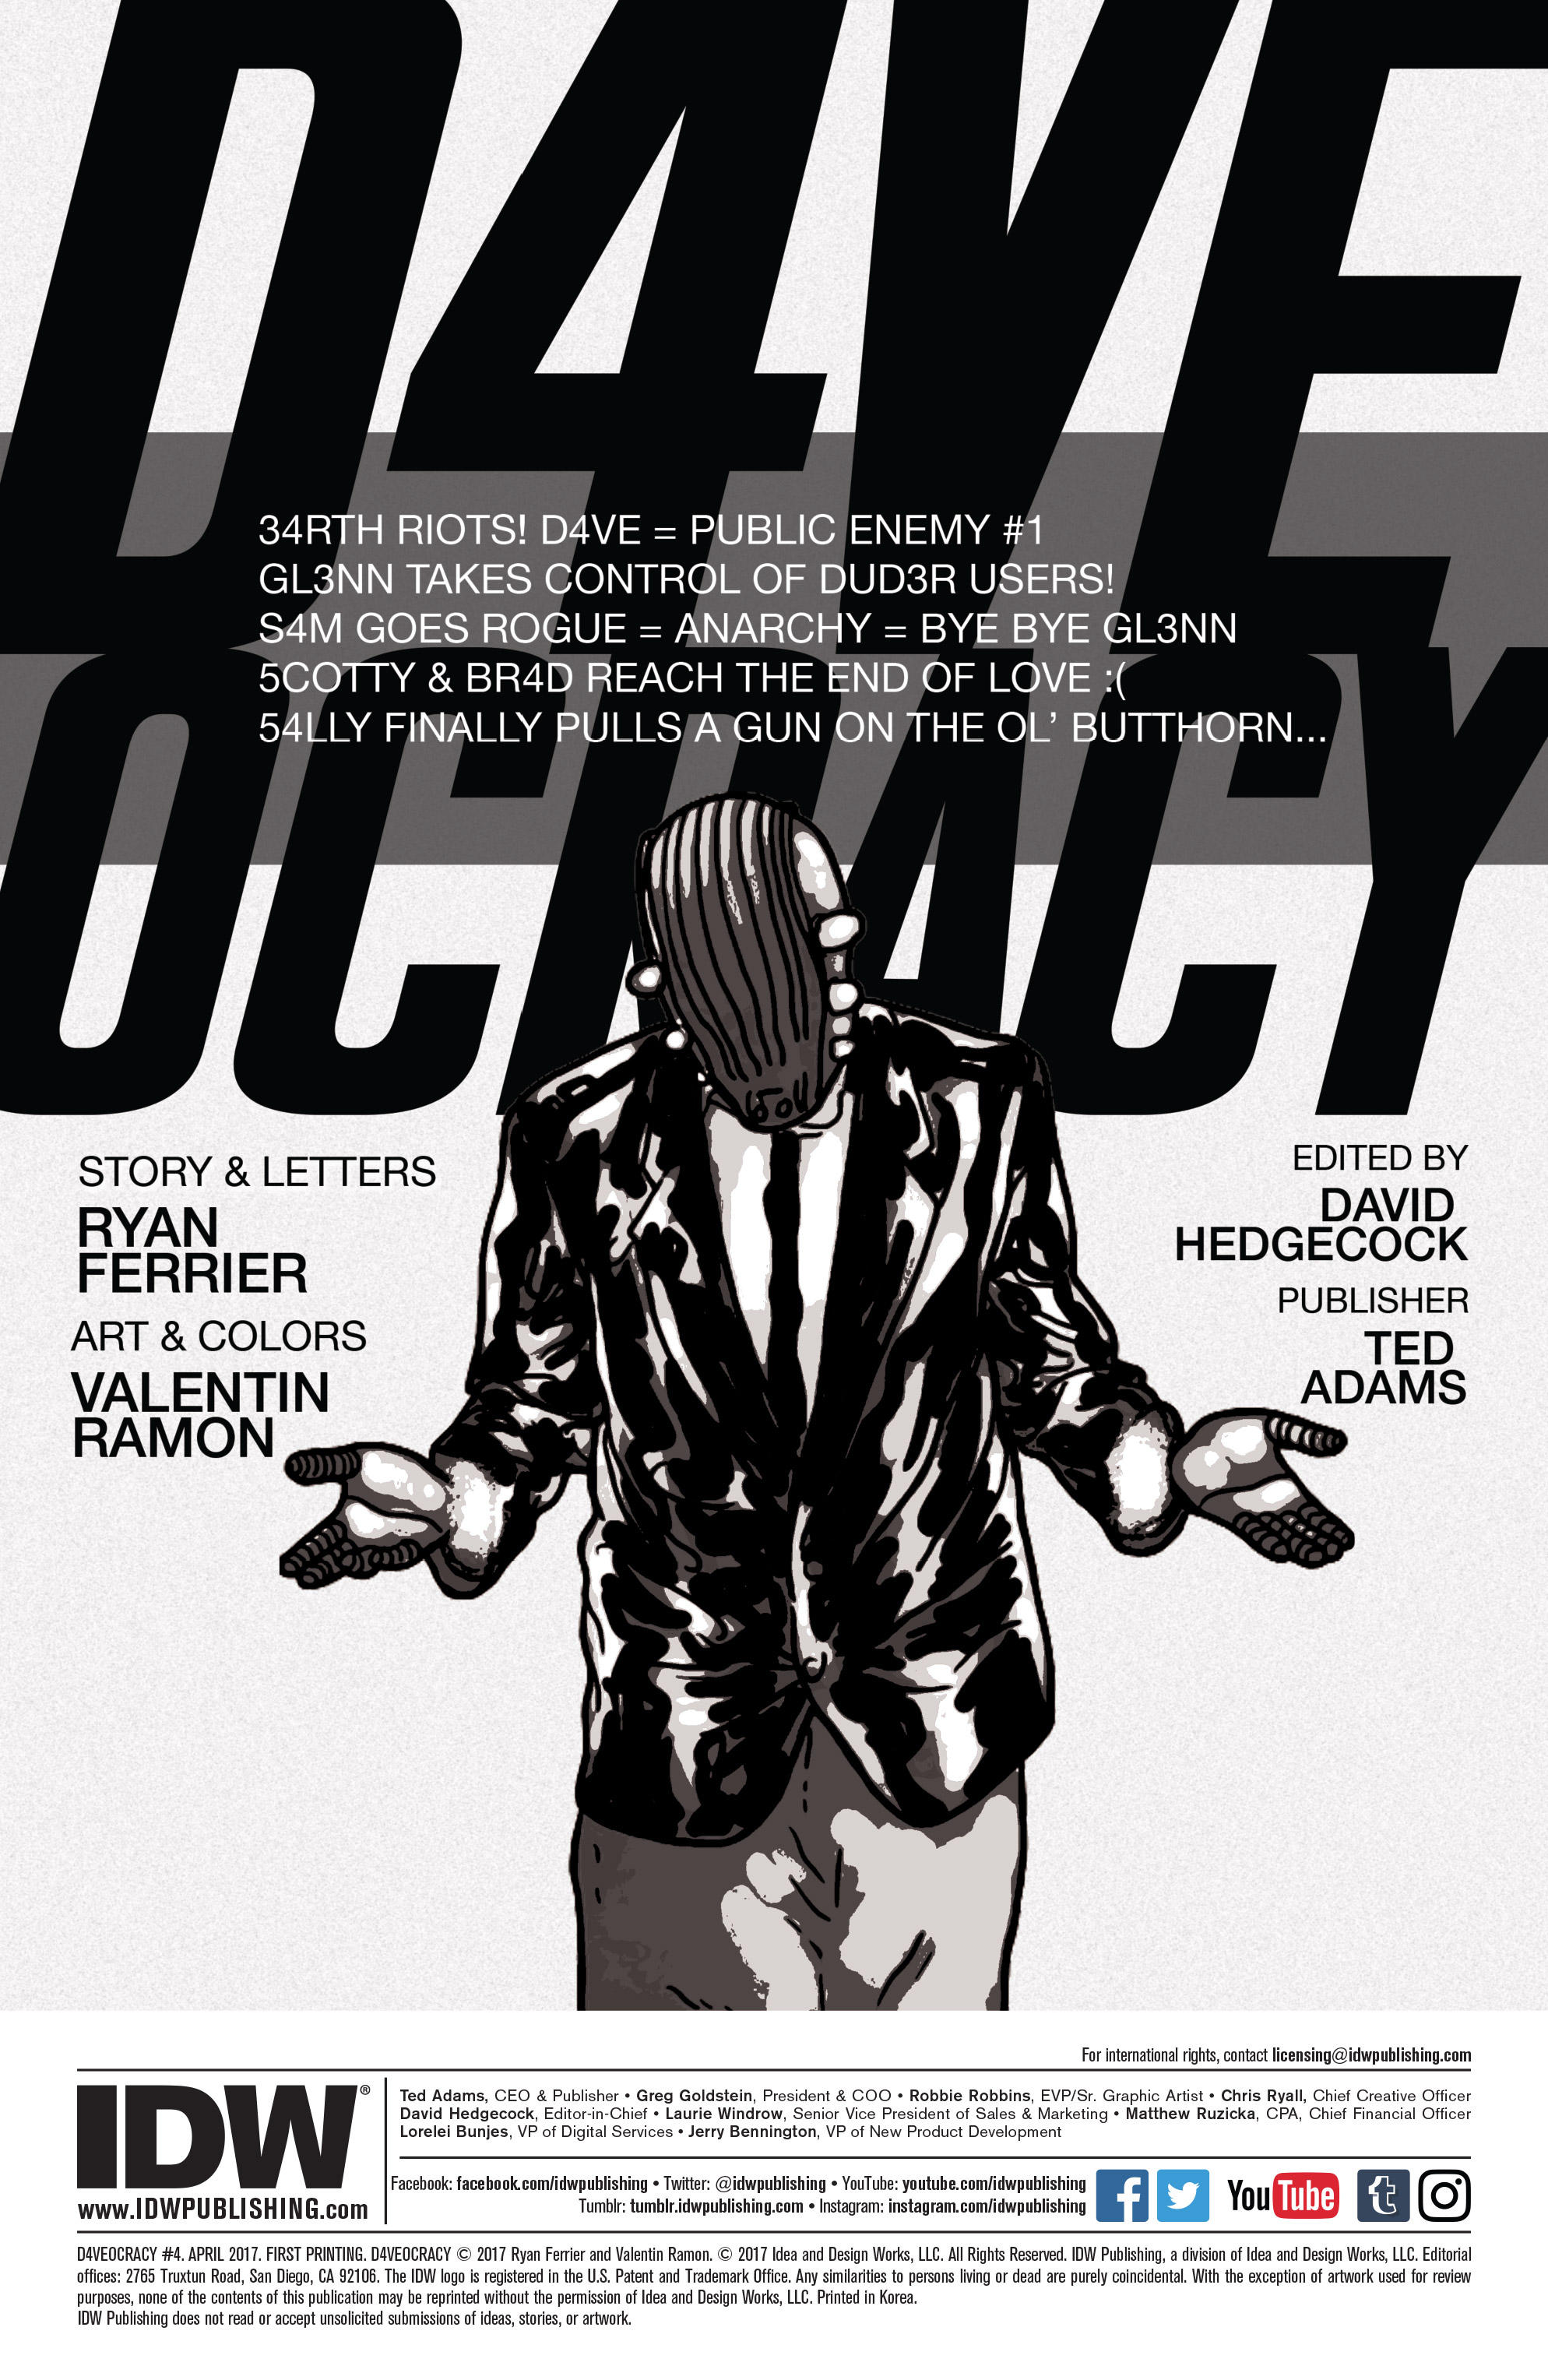 Read online D4VEocracy comic -  Issue #4 - 2